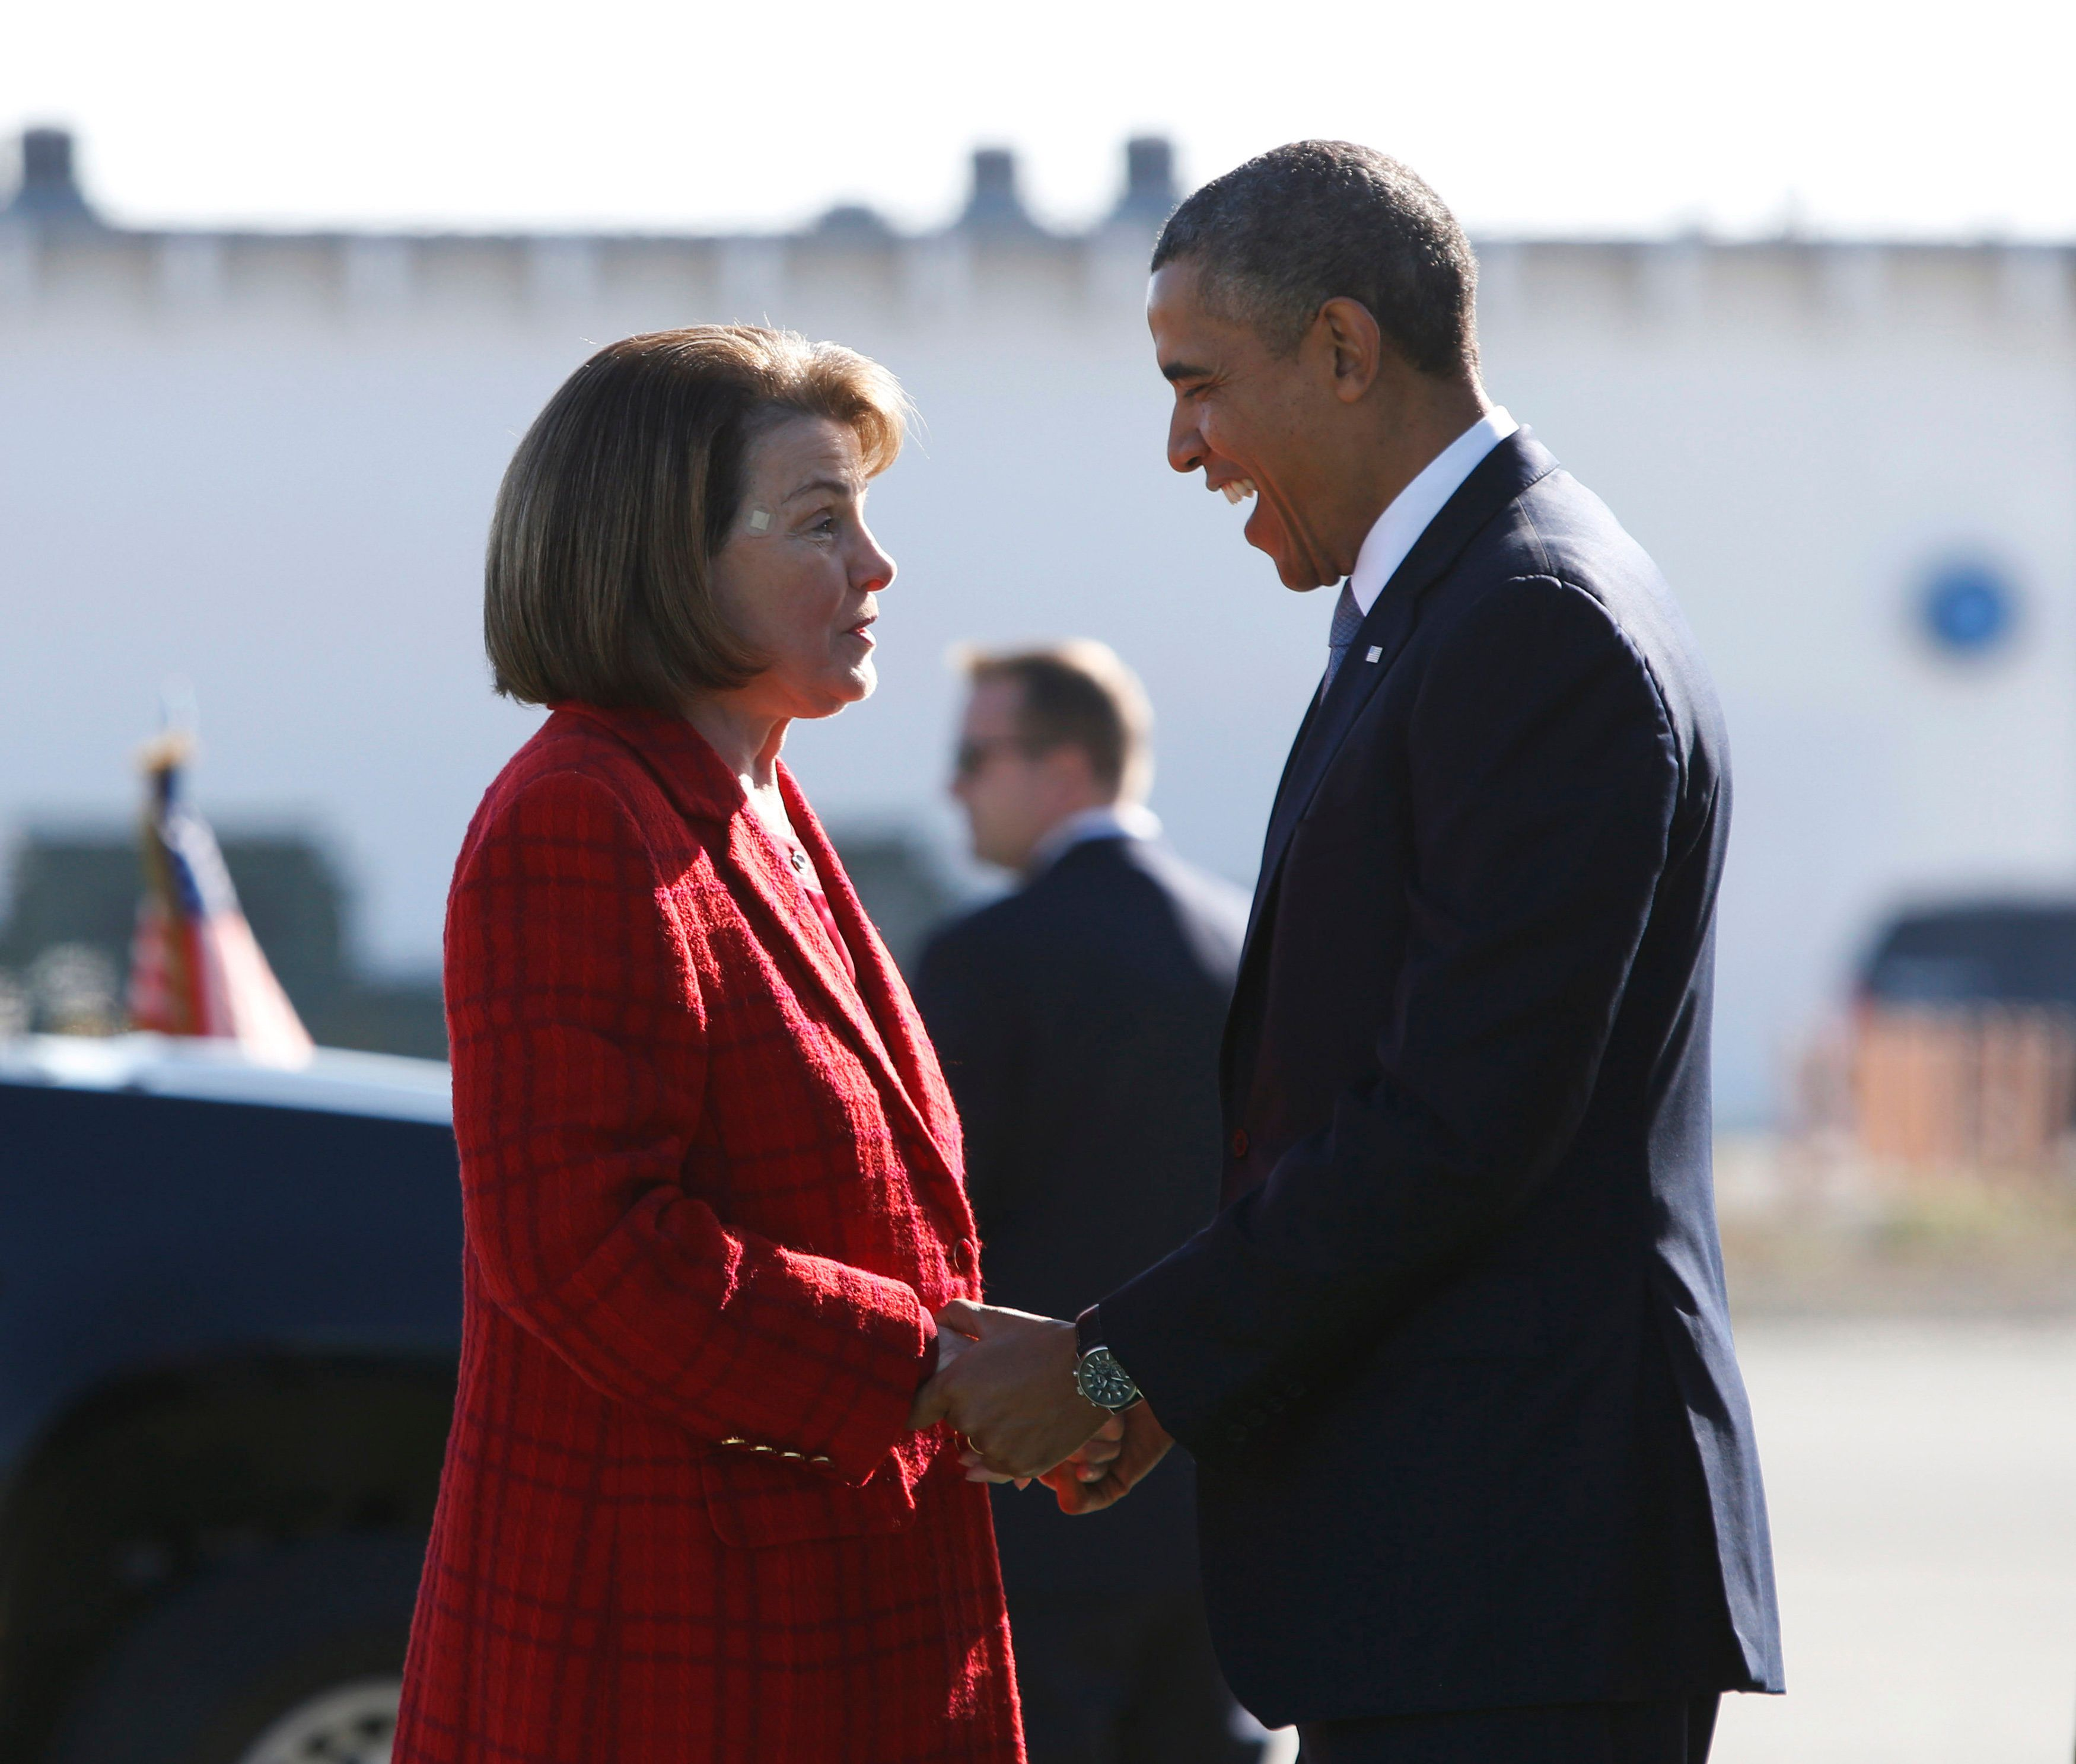 U.S. President Barack Obama is greeted by U.S. Senator Diane Feinstein (D-CA) upon his arrival in San Francsico, November 25, 2013. Obama is attending fundraisers and events on immigration policy reform in San Francisco on Monday.     REUTERS/Jason Reed   (UNITED STATES - Tags: POLITICS)